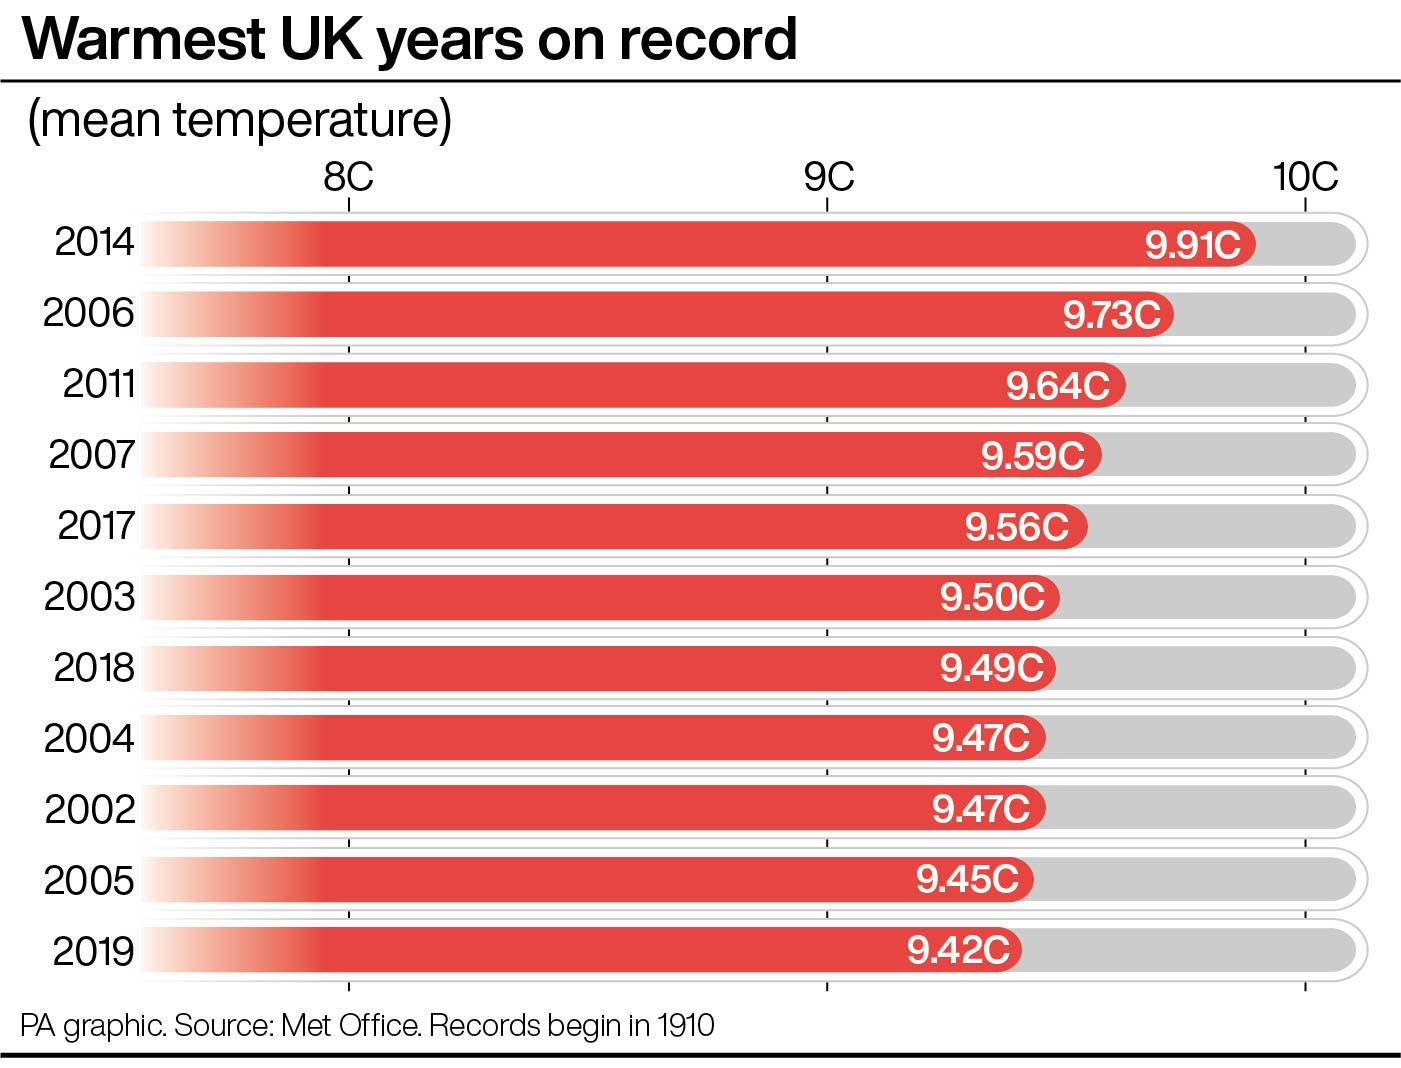 Warmest UK years on record